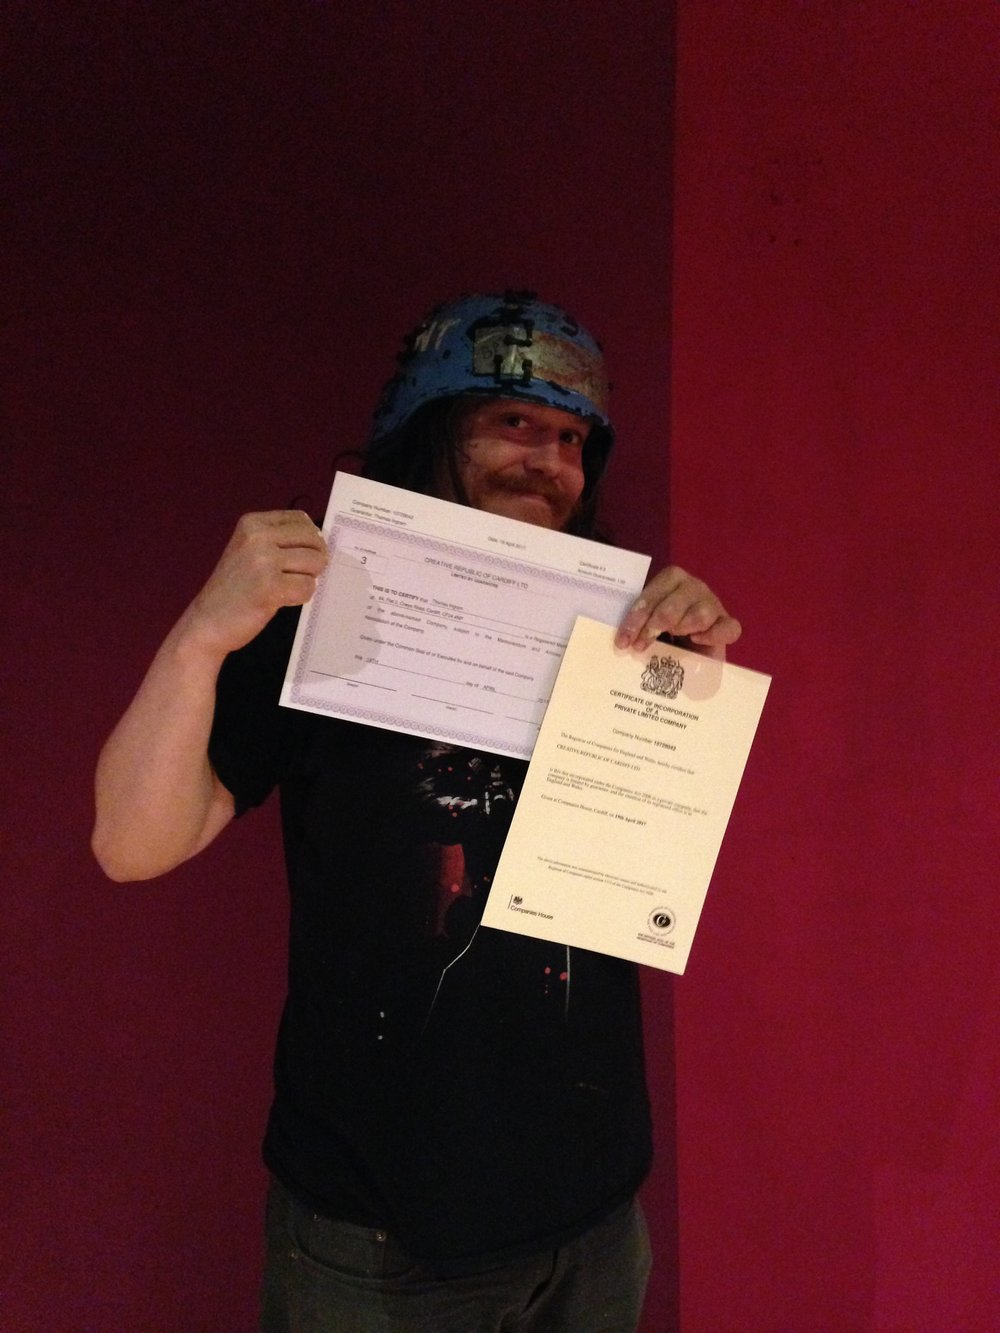 Tommy with our new certificates